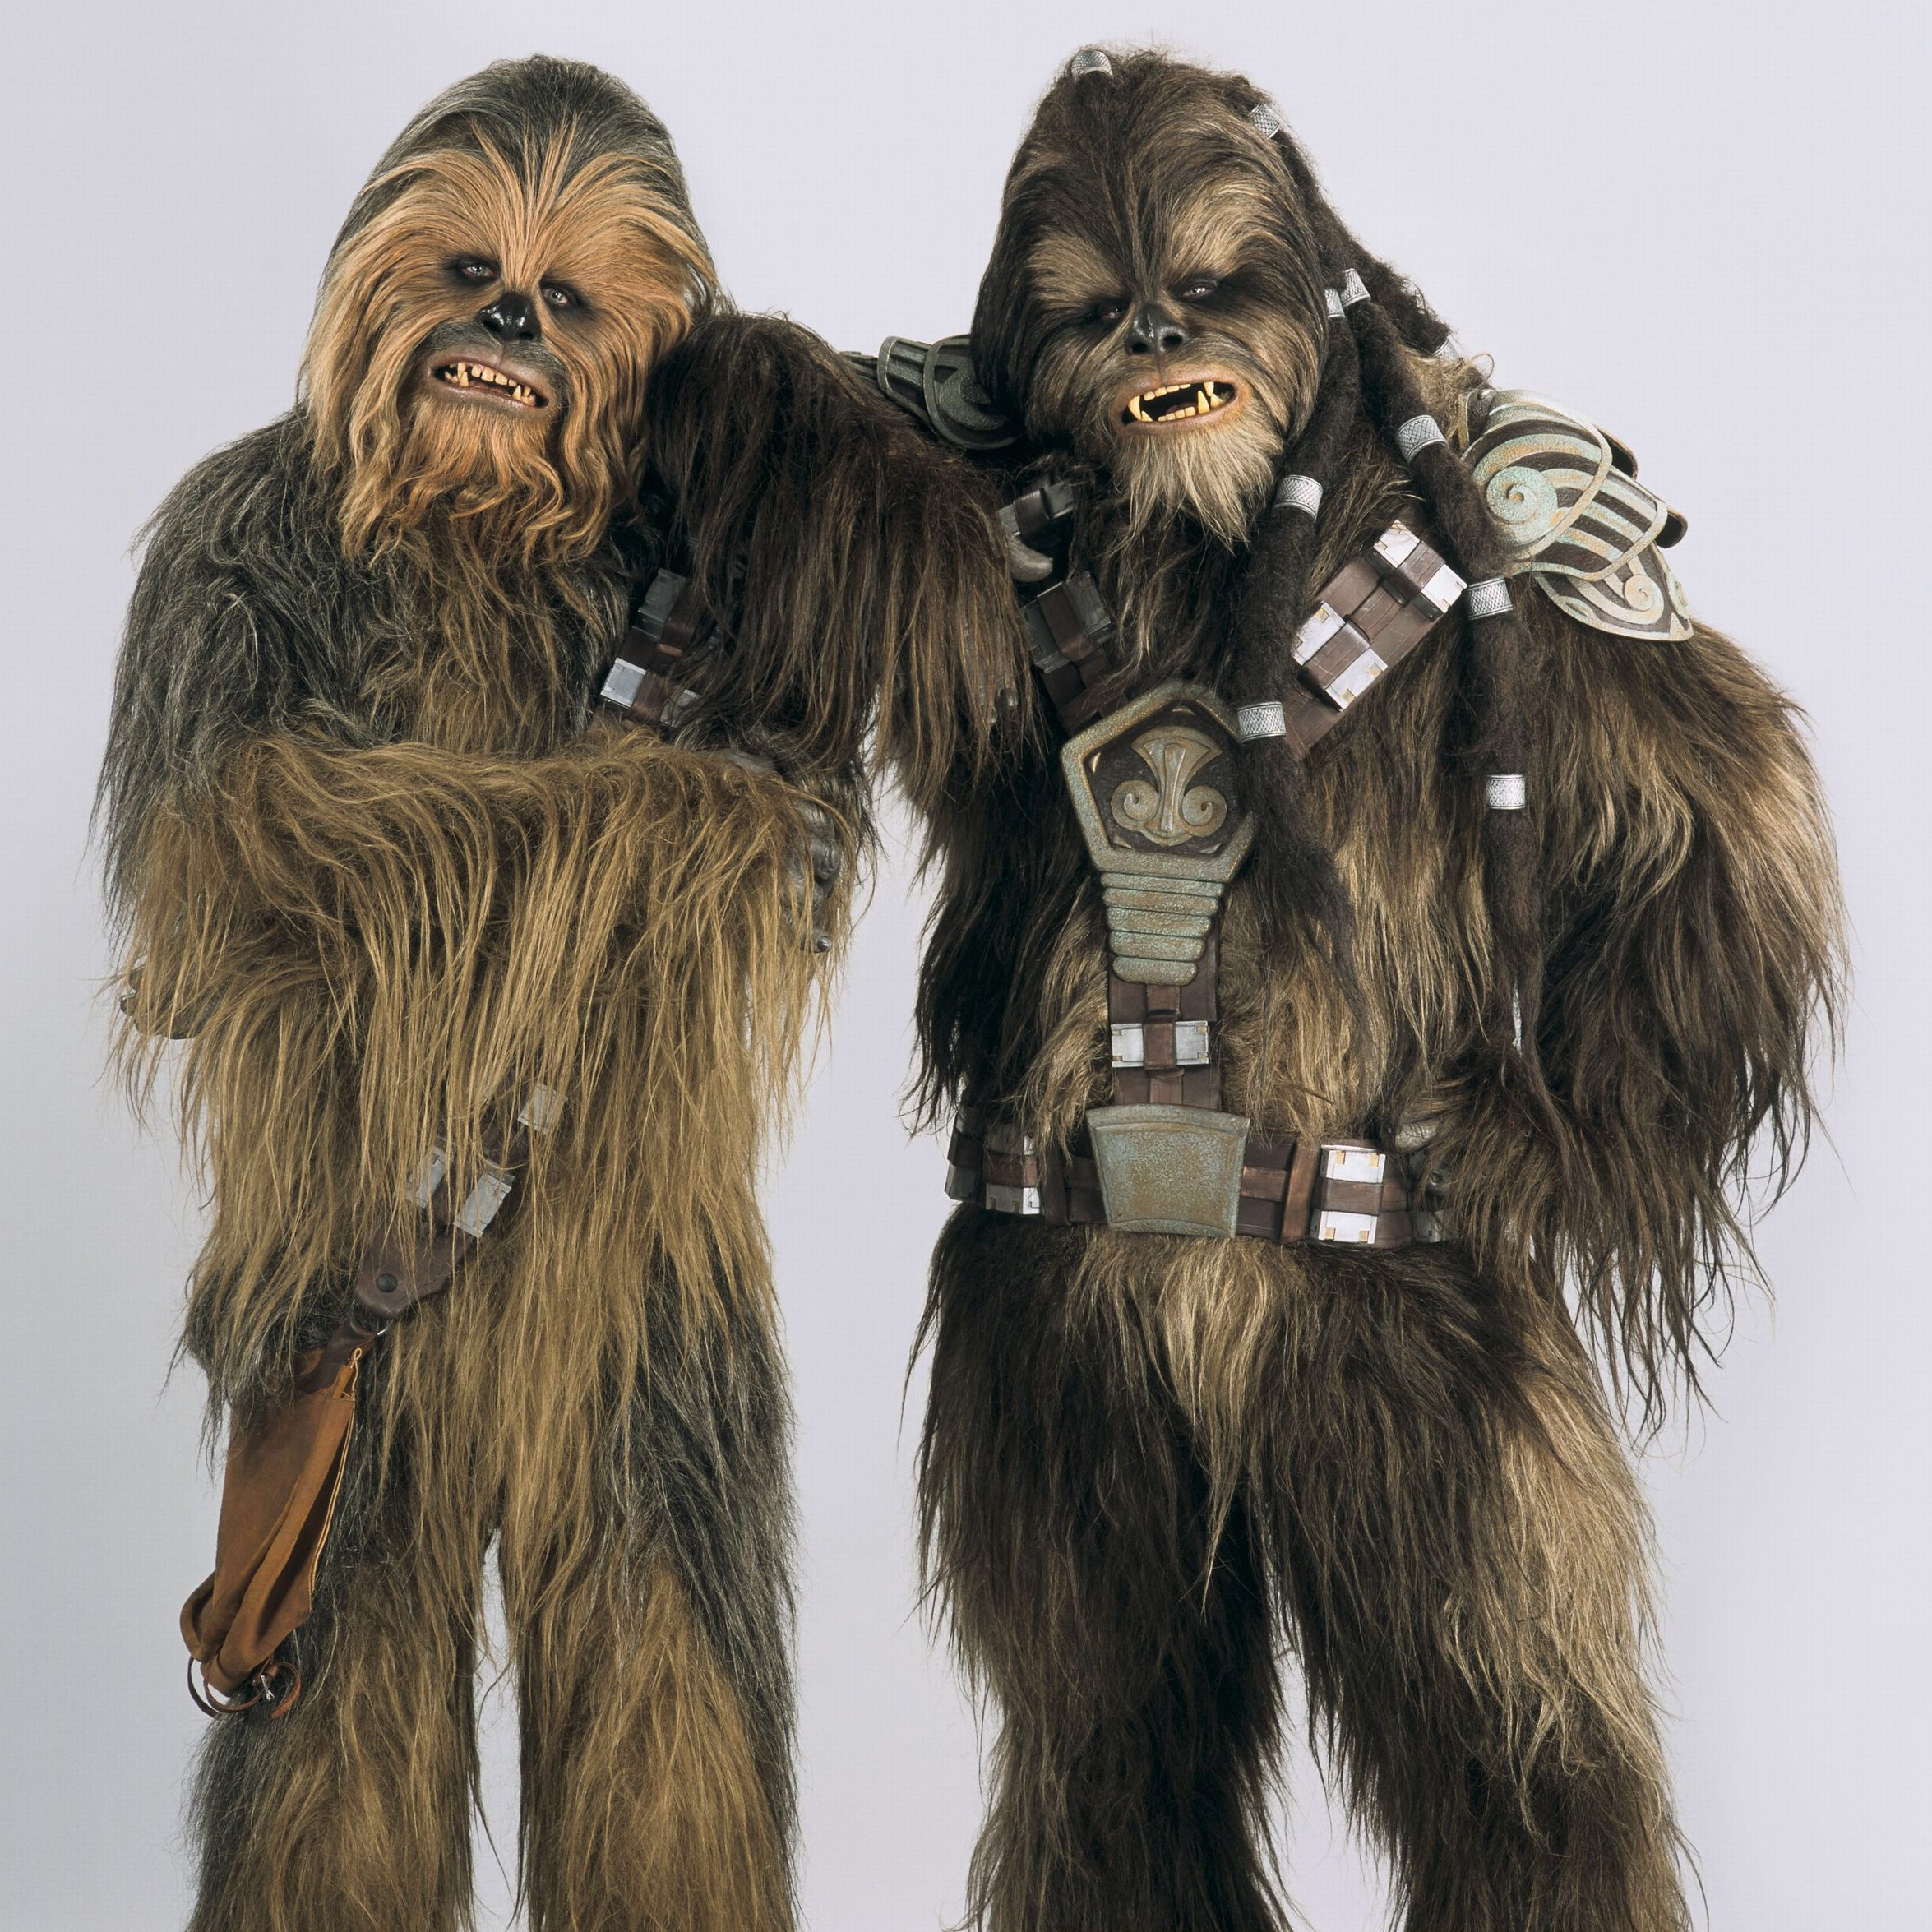 Image - Wooky.jpg - Wookieepedia, the Star Wars Wiki